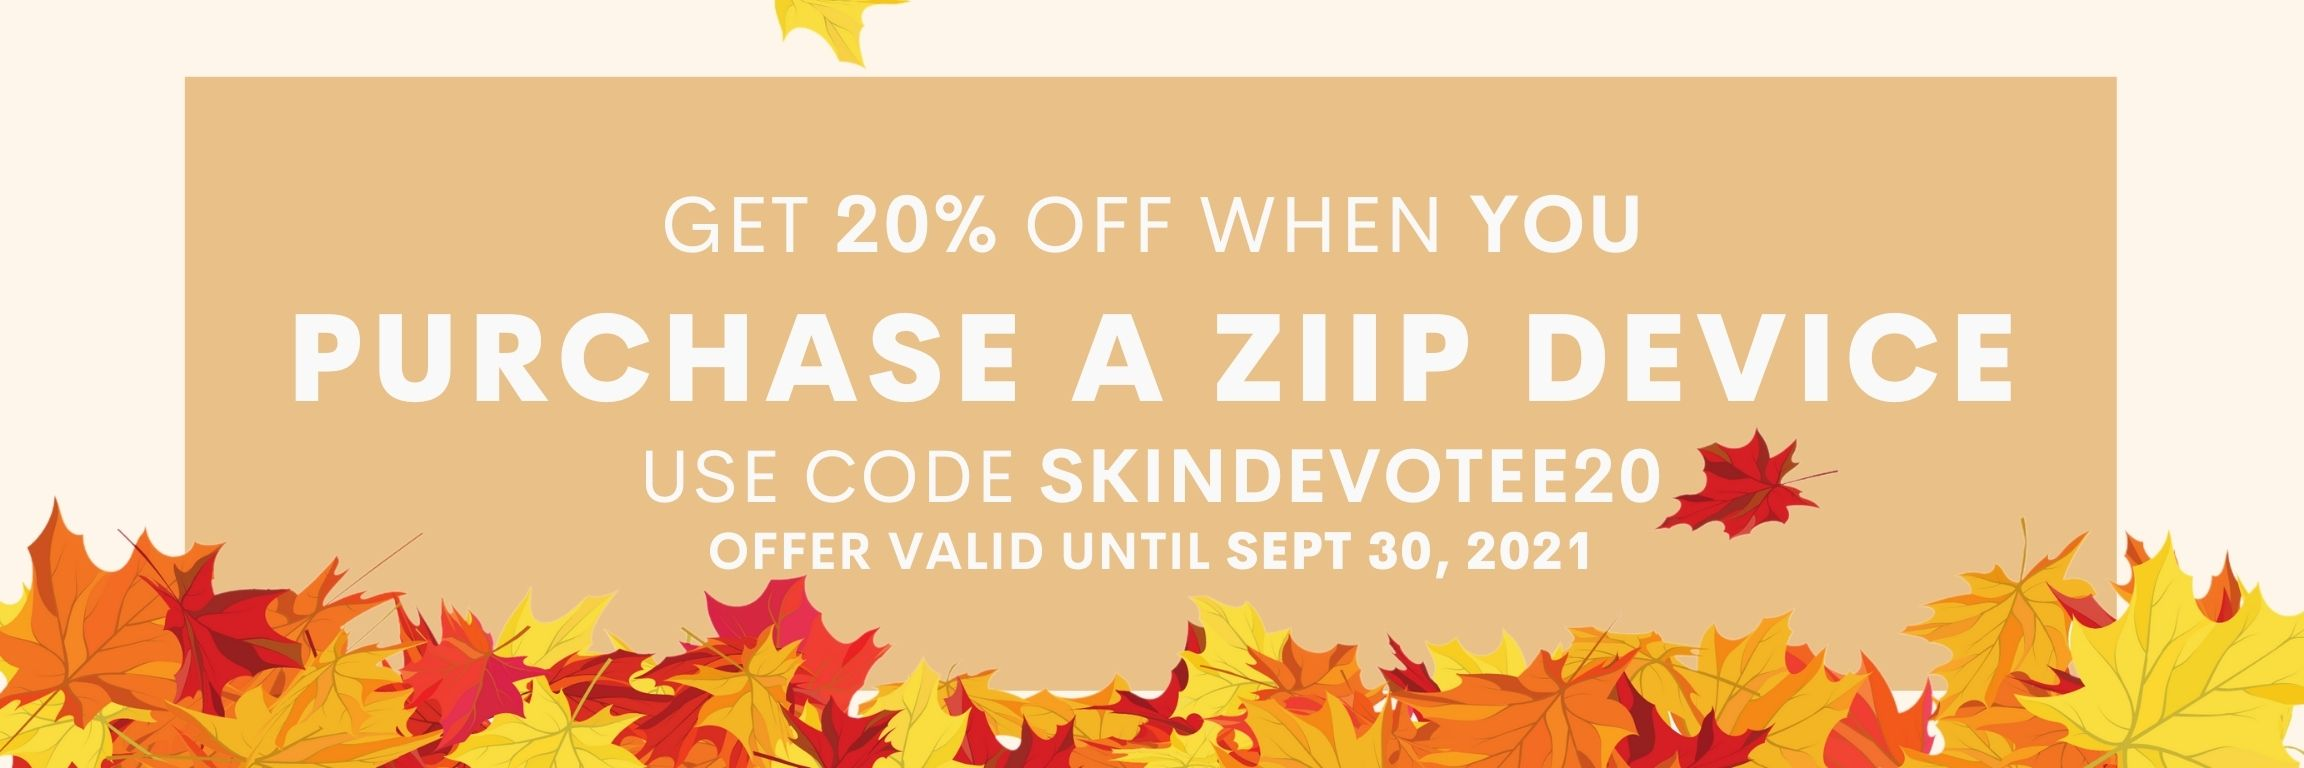 20% Off All Devices Promo at Skin Devotee Online Boutique valid until September 30 2021